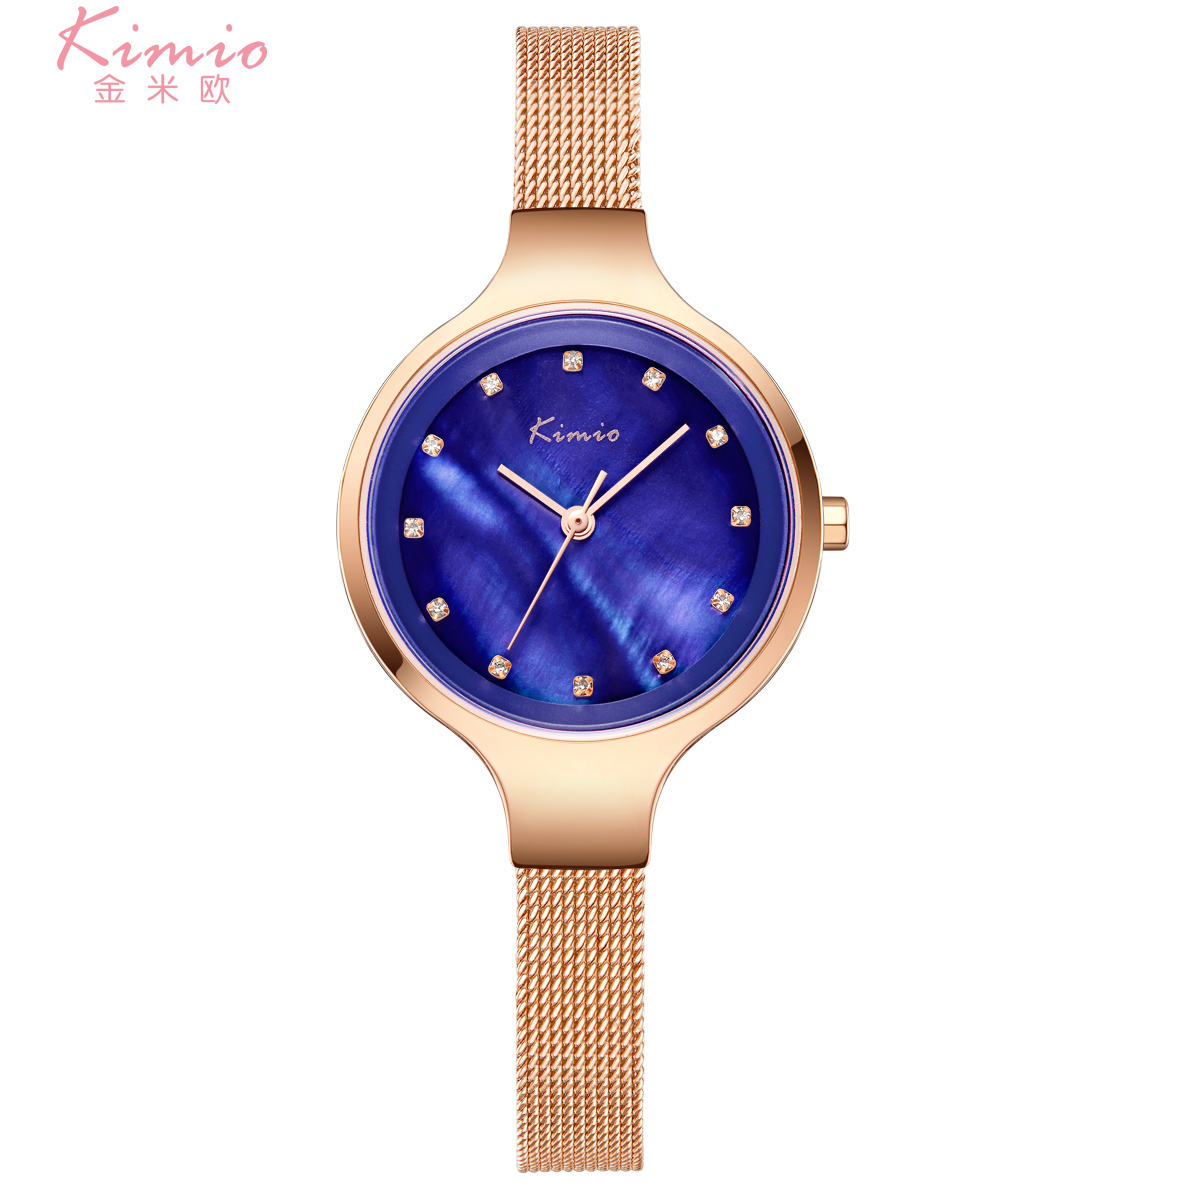 KIMIO Brand Women Watches Pearl Fritillaria Dial Diamond Bracelet Quartz Watch Lady Milanese Steel Dress Clock Relogio Feminino brand kimio reloj mujer fashion women pearl bracelet watches crystal dial quartz watch gold women watches relogio feminino clock